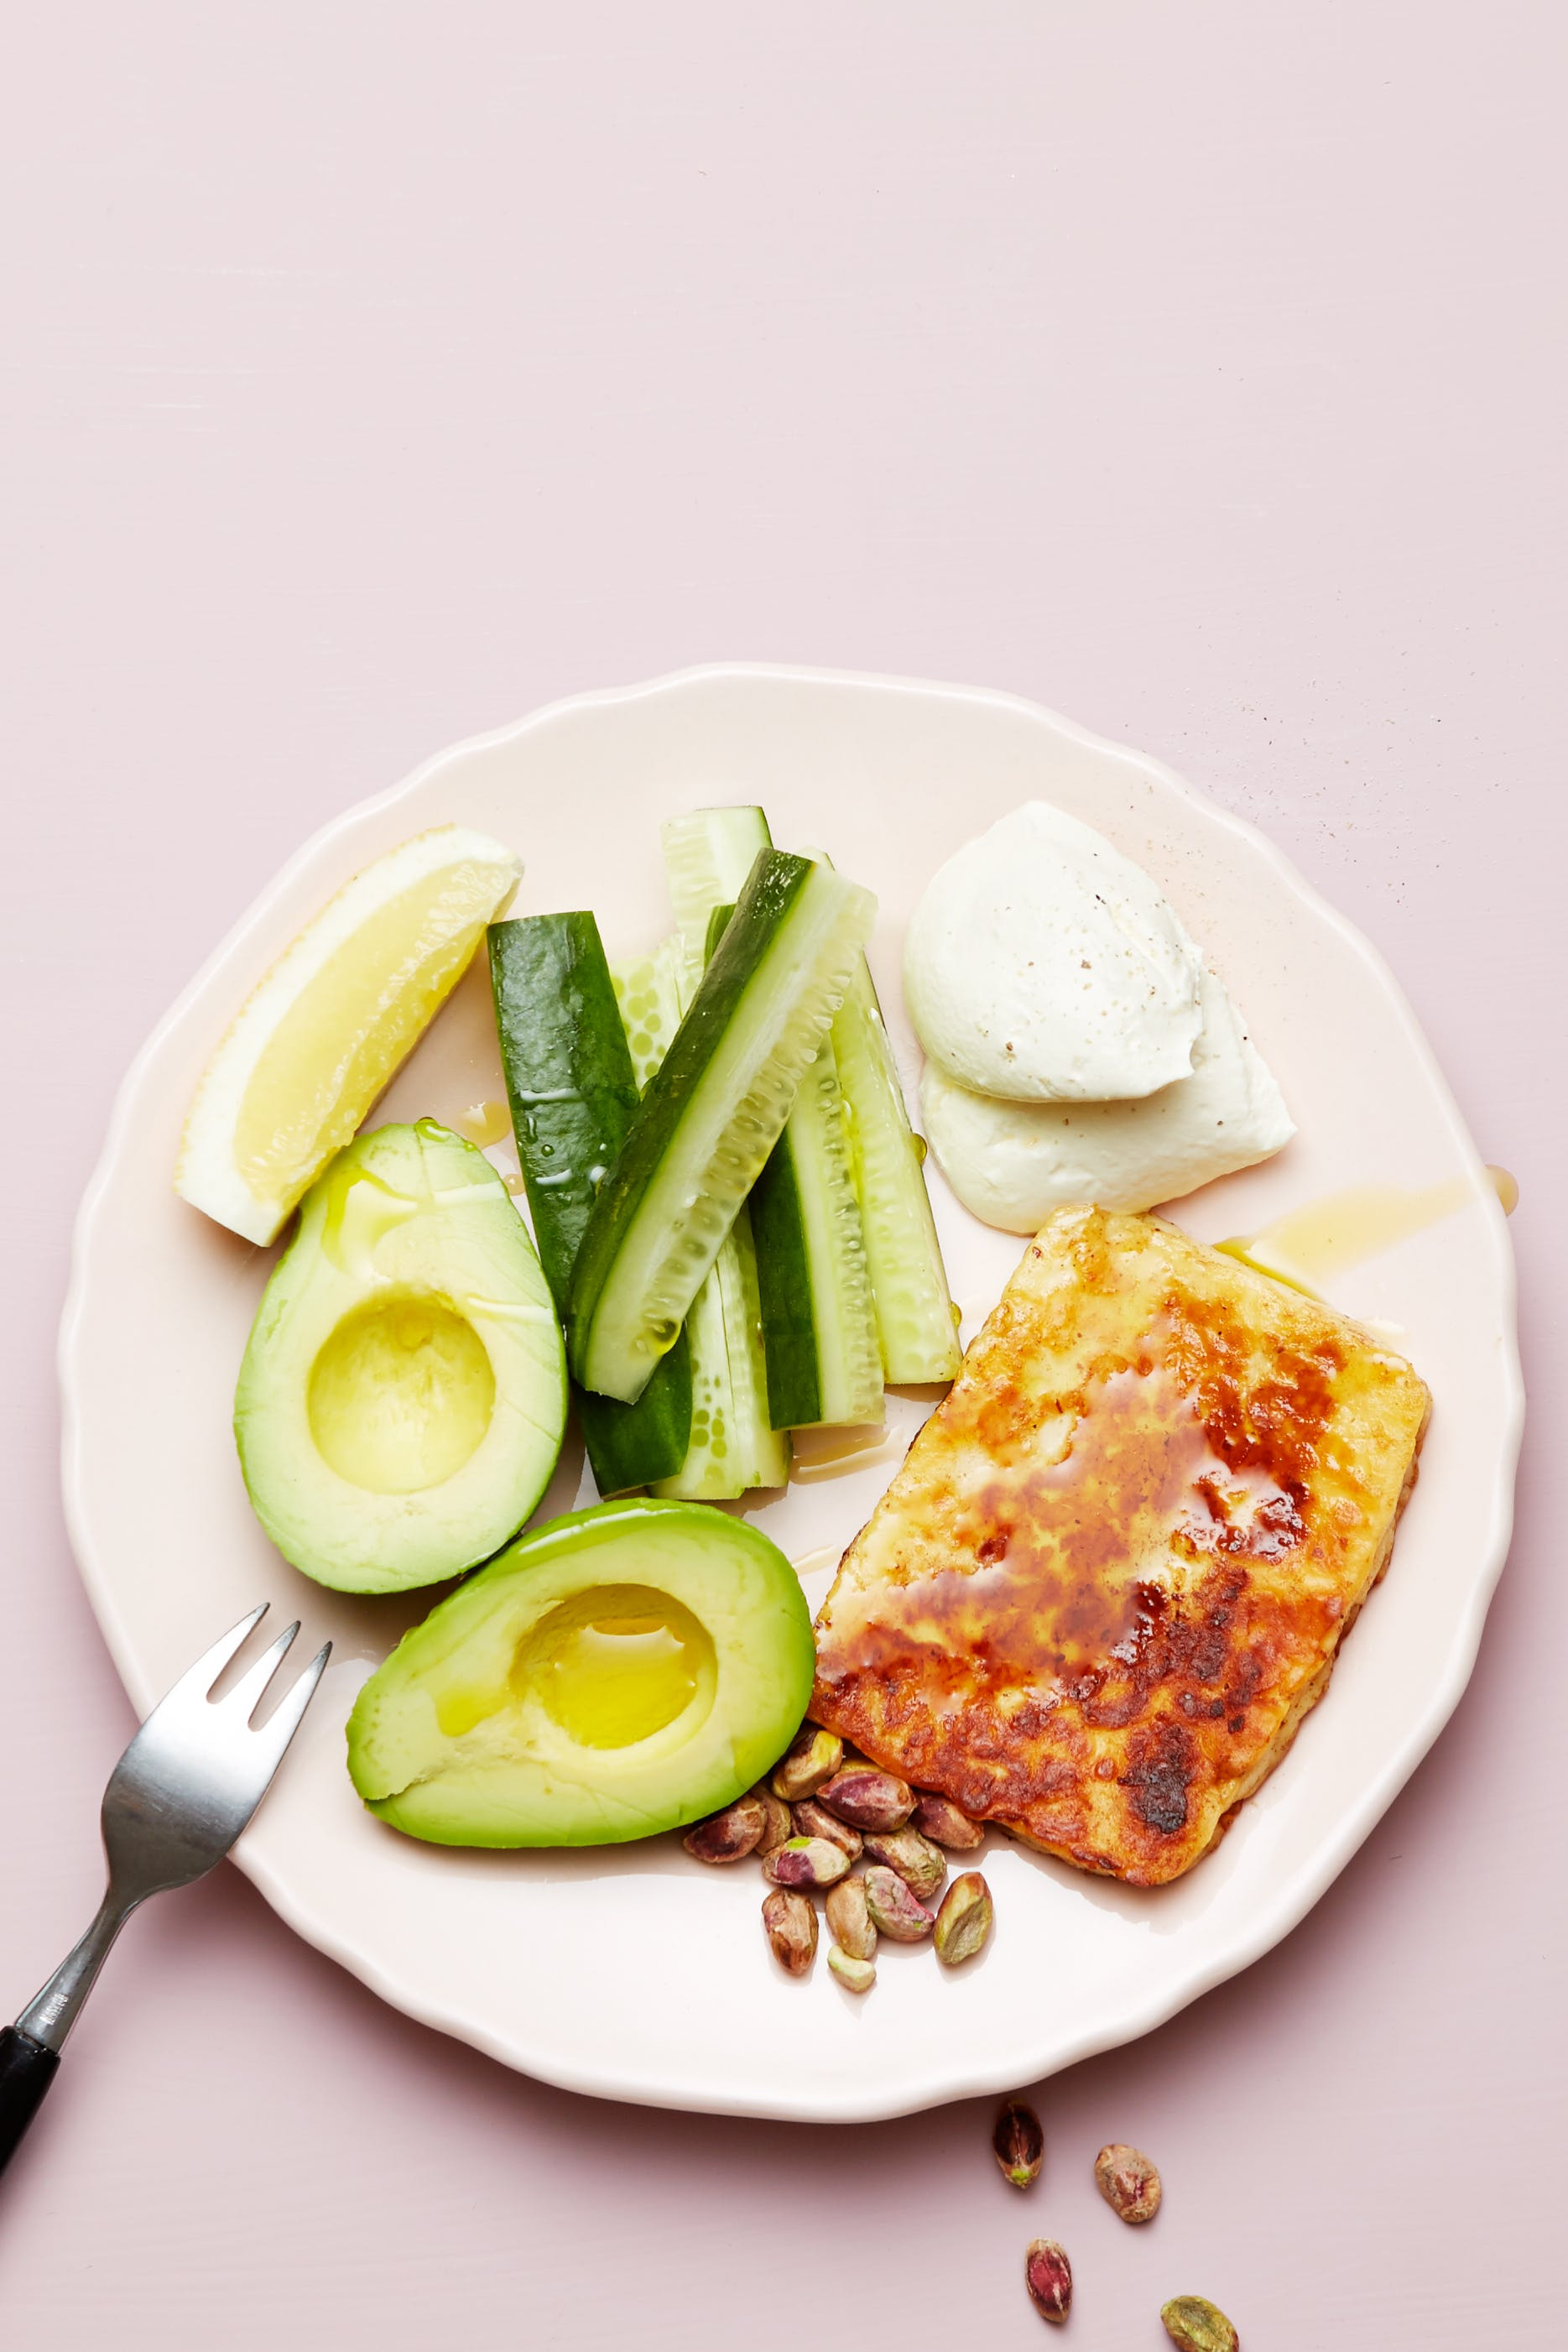 Keto halloumi cheese and avocado plate